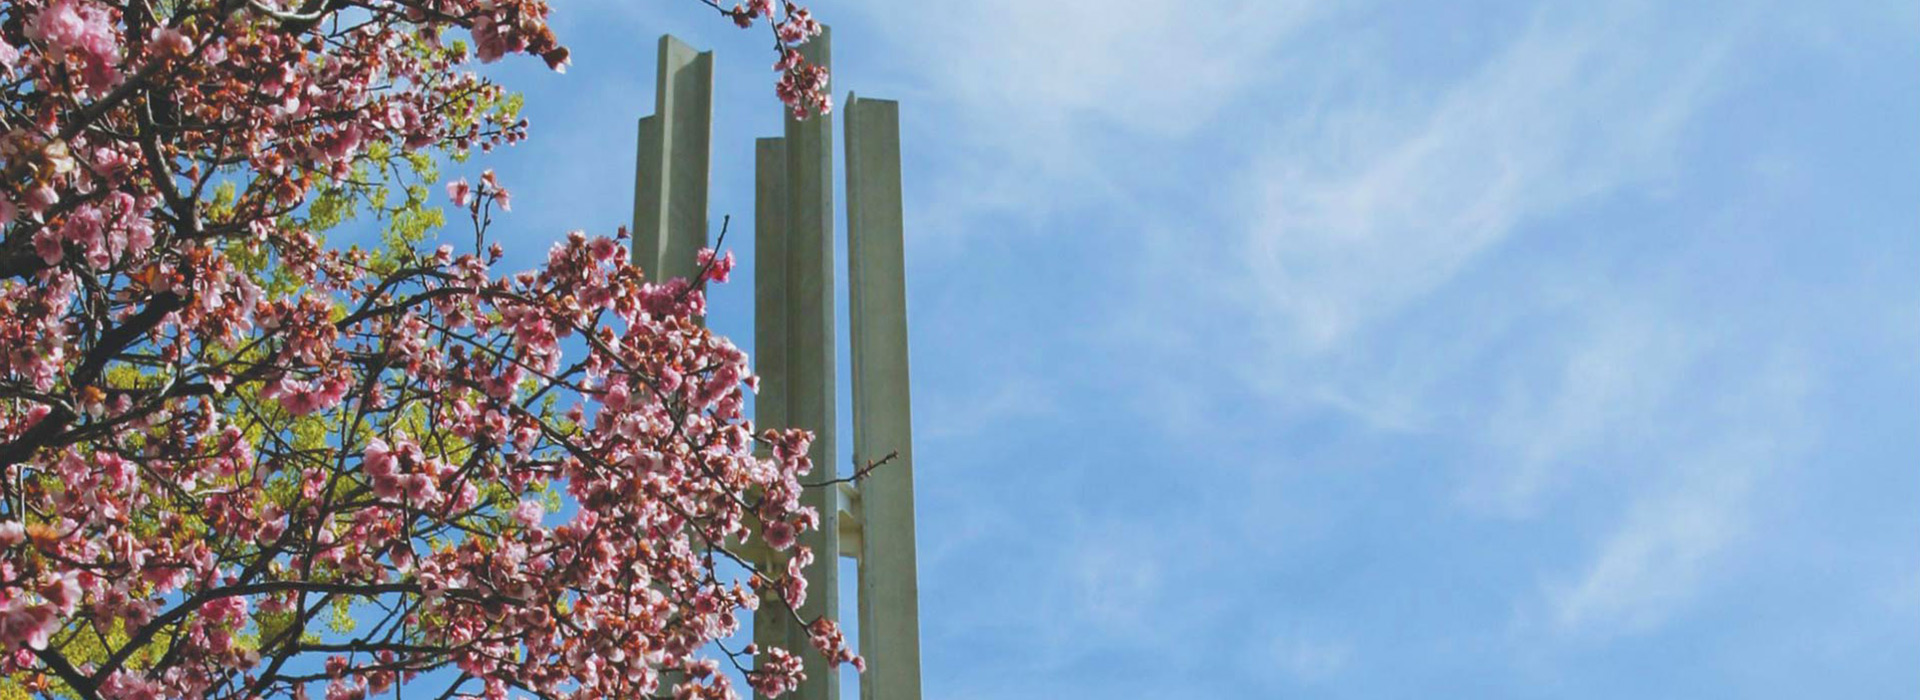 Tree blossoms and the CSI campus tower